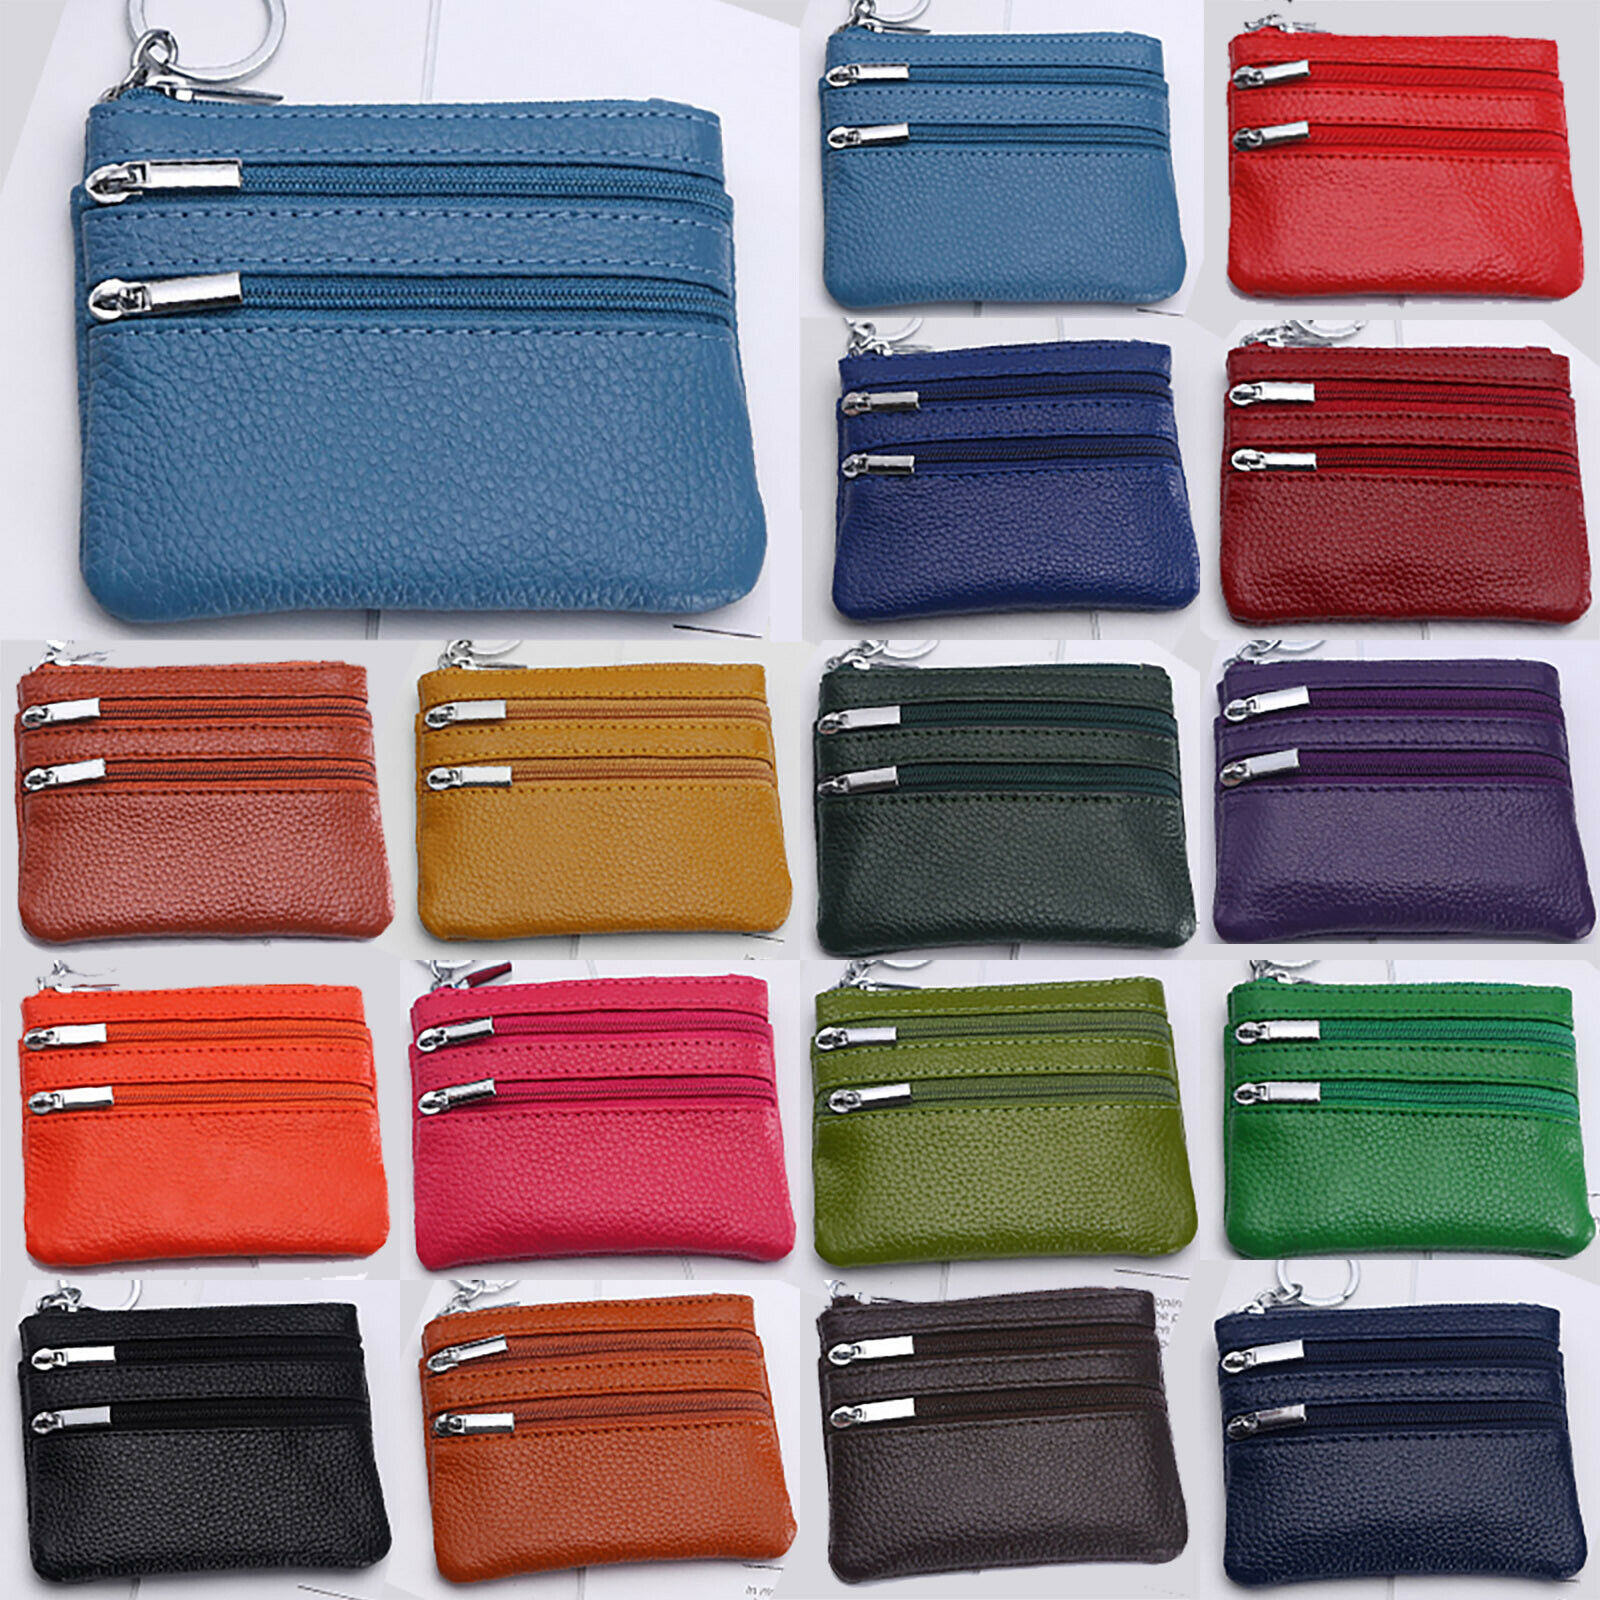 Fashion Womens Coin Purse Small Double Layer Zipper Wallet Money Bags Key Holder